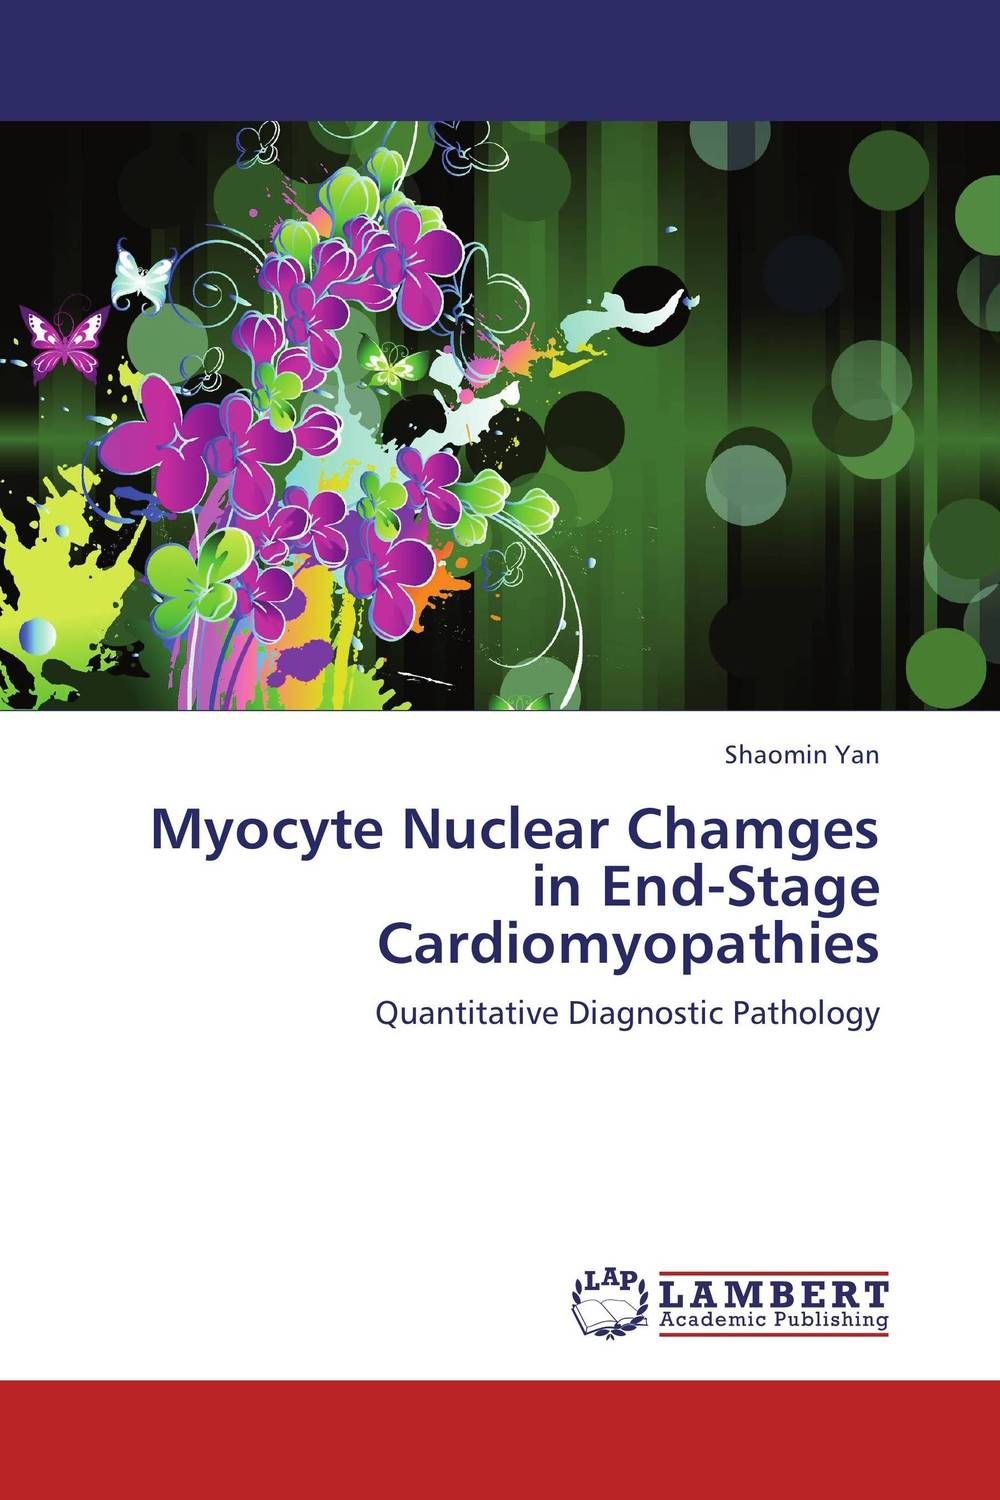 Myocyte Nuclear Chamges in End-Stage Cardiomyopathies methods in enzymology chromatin and chromatin remodeling enzymes part a vol 375